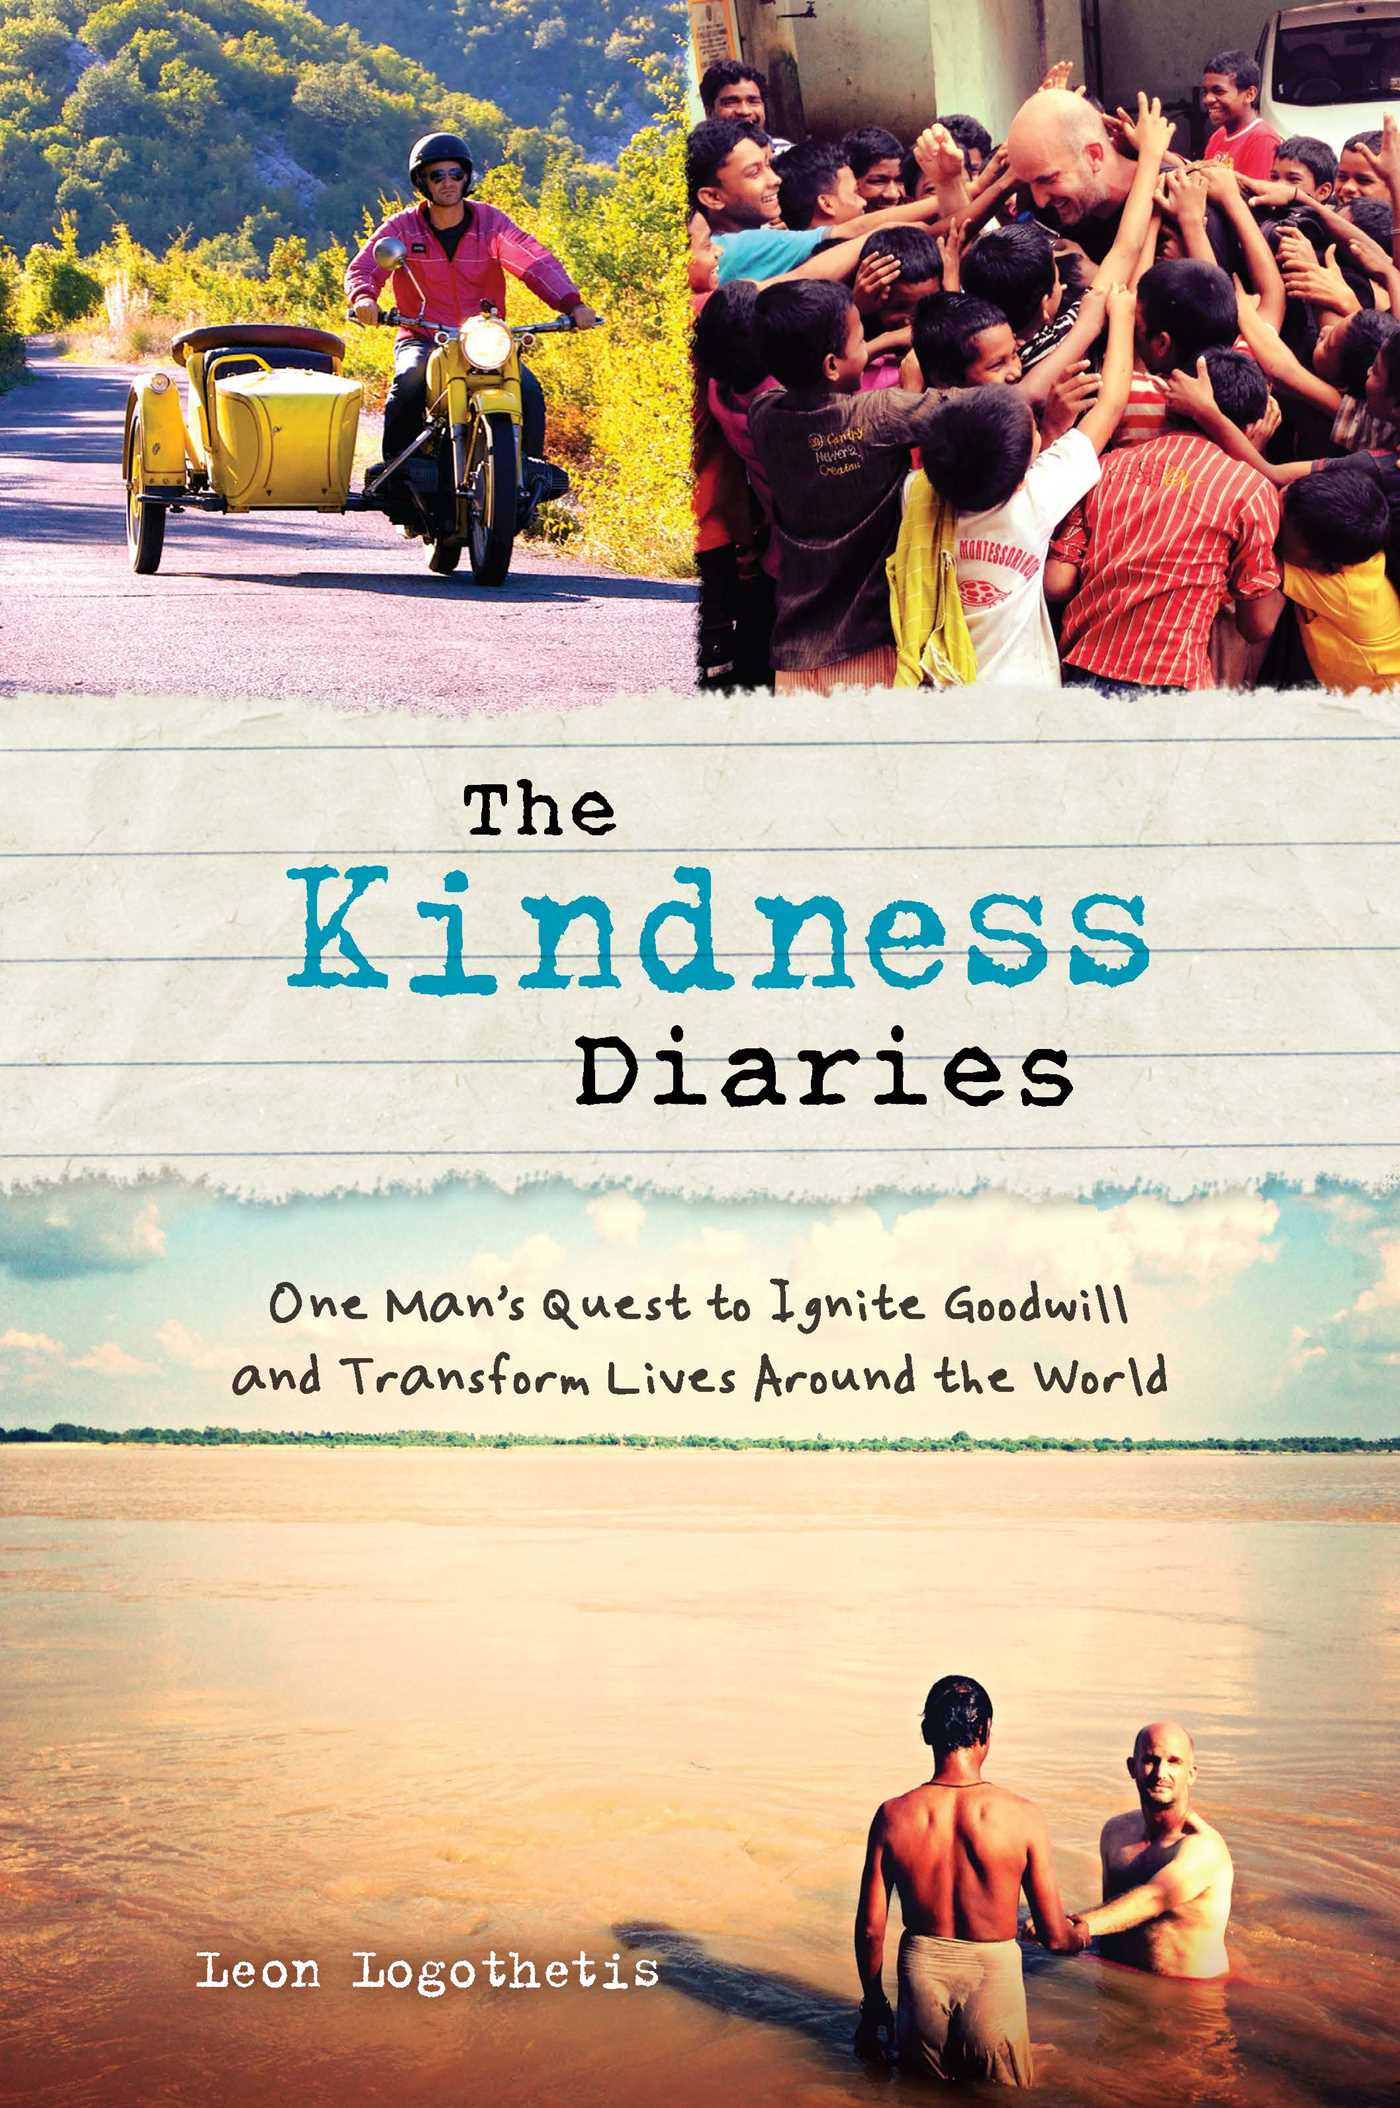 Kindness-diaries-9781621451914_hr